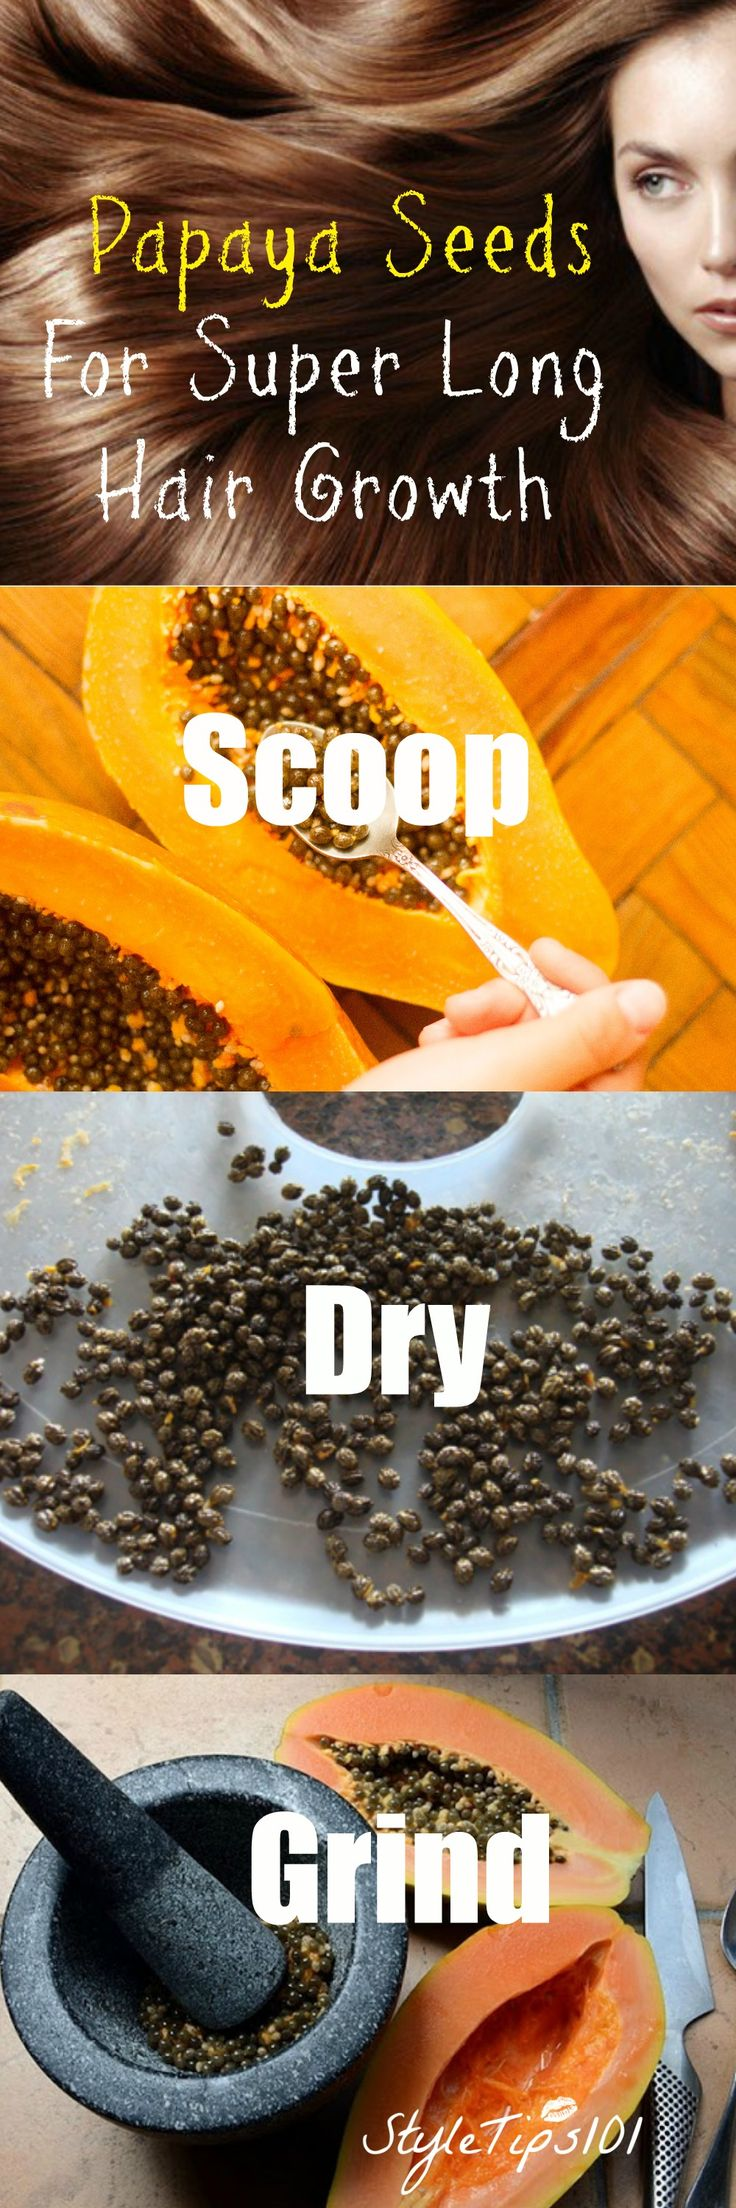 Scoop them out, dry them, mash them, and add the papaya seed powder directly to your shampoo bottle!